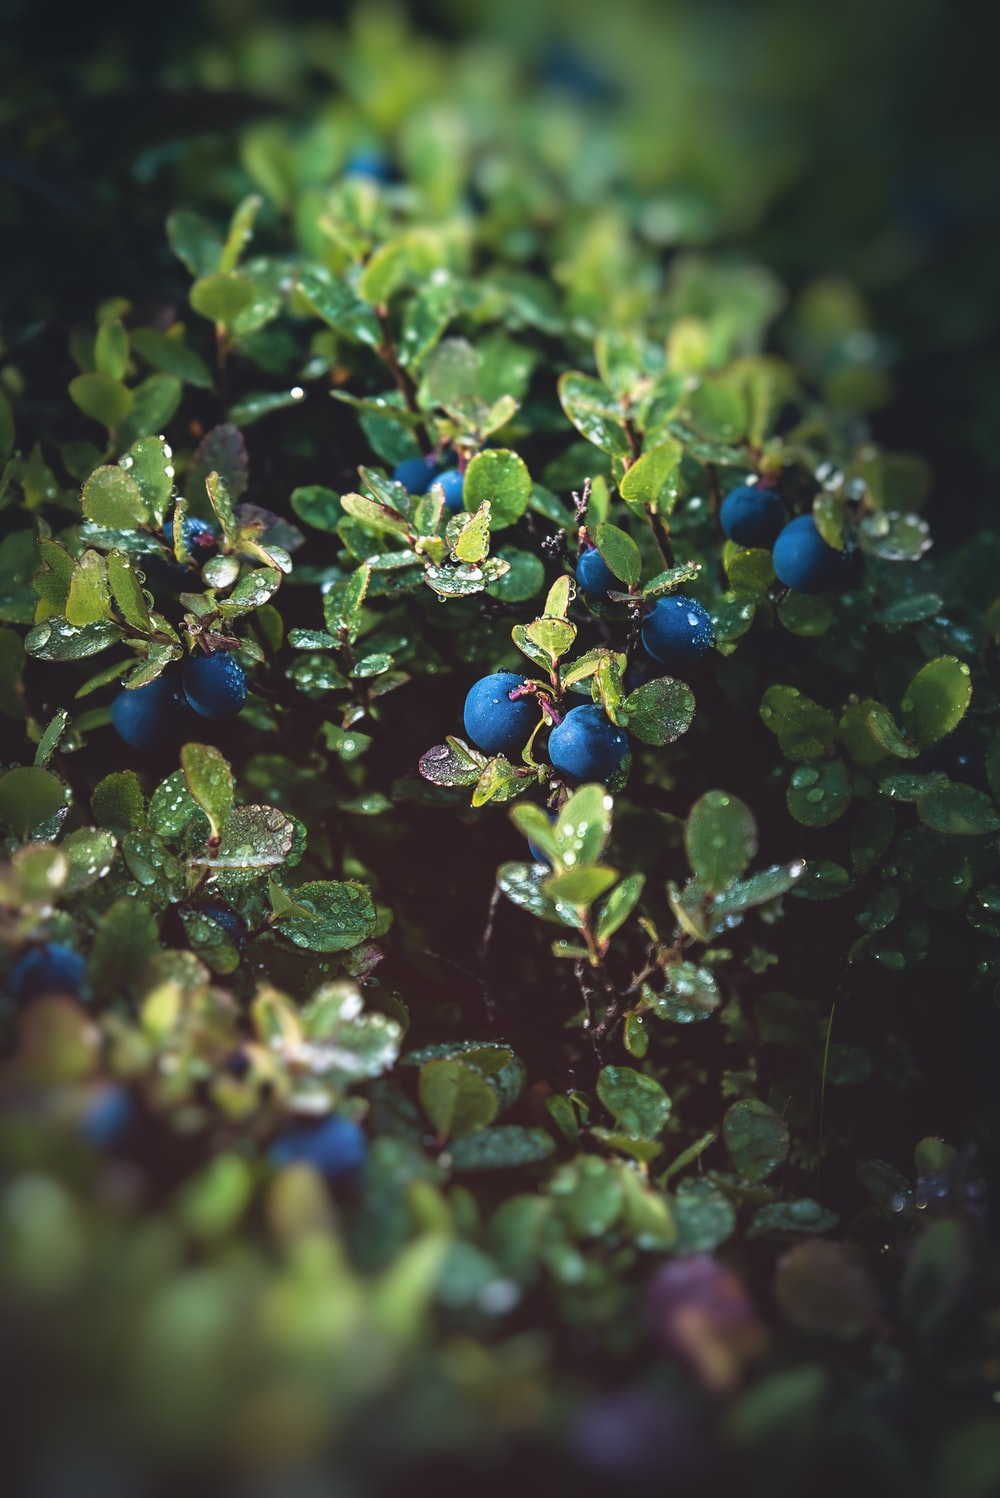 blue round fruits on green leaves